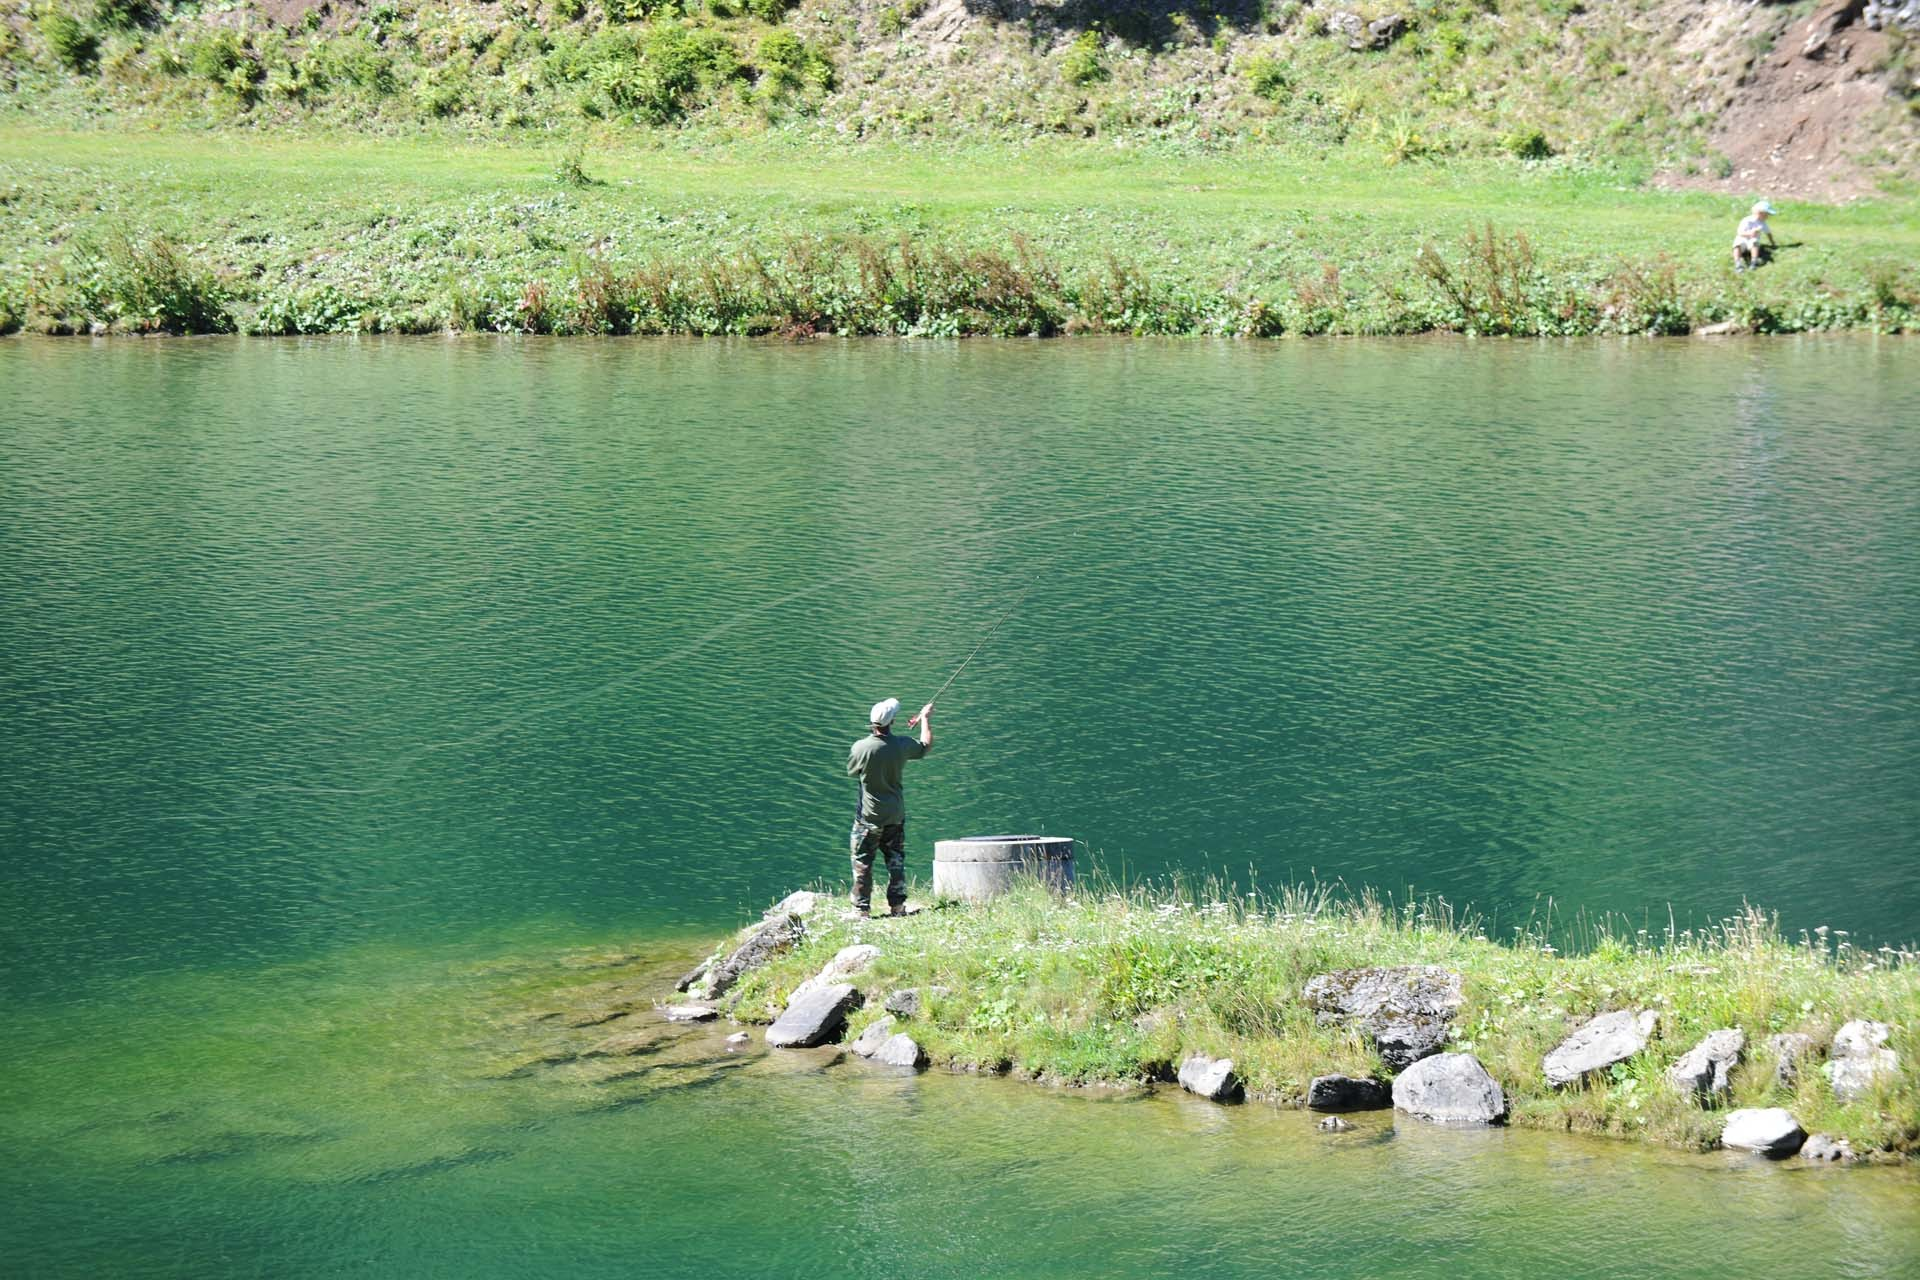 Fishing in lake Mouille